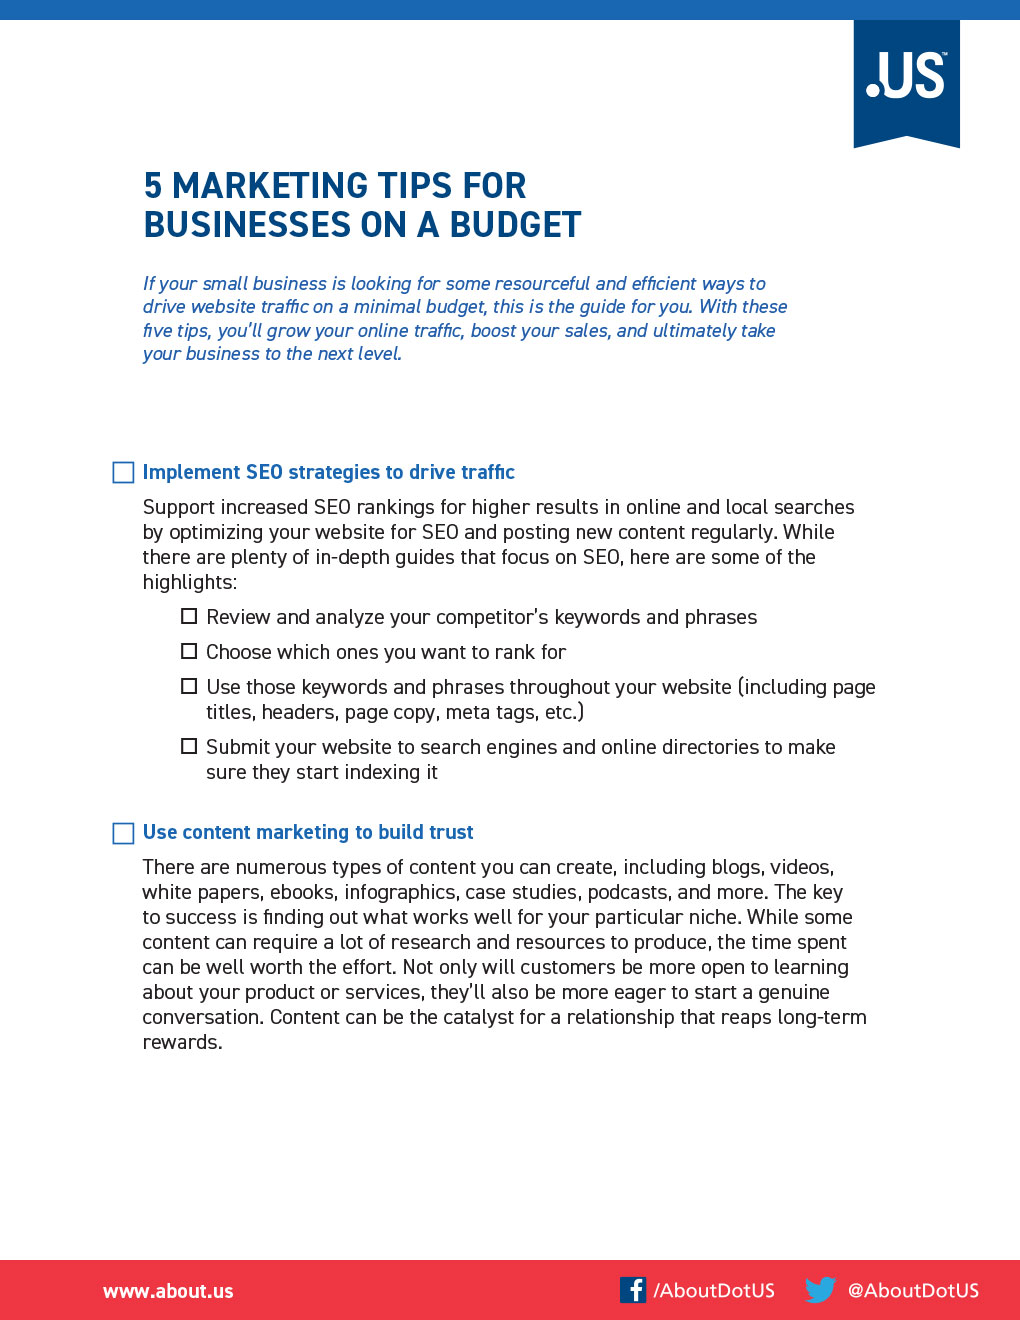 Marketing Tips for Businesses